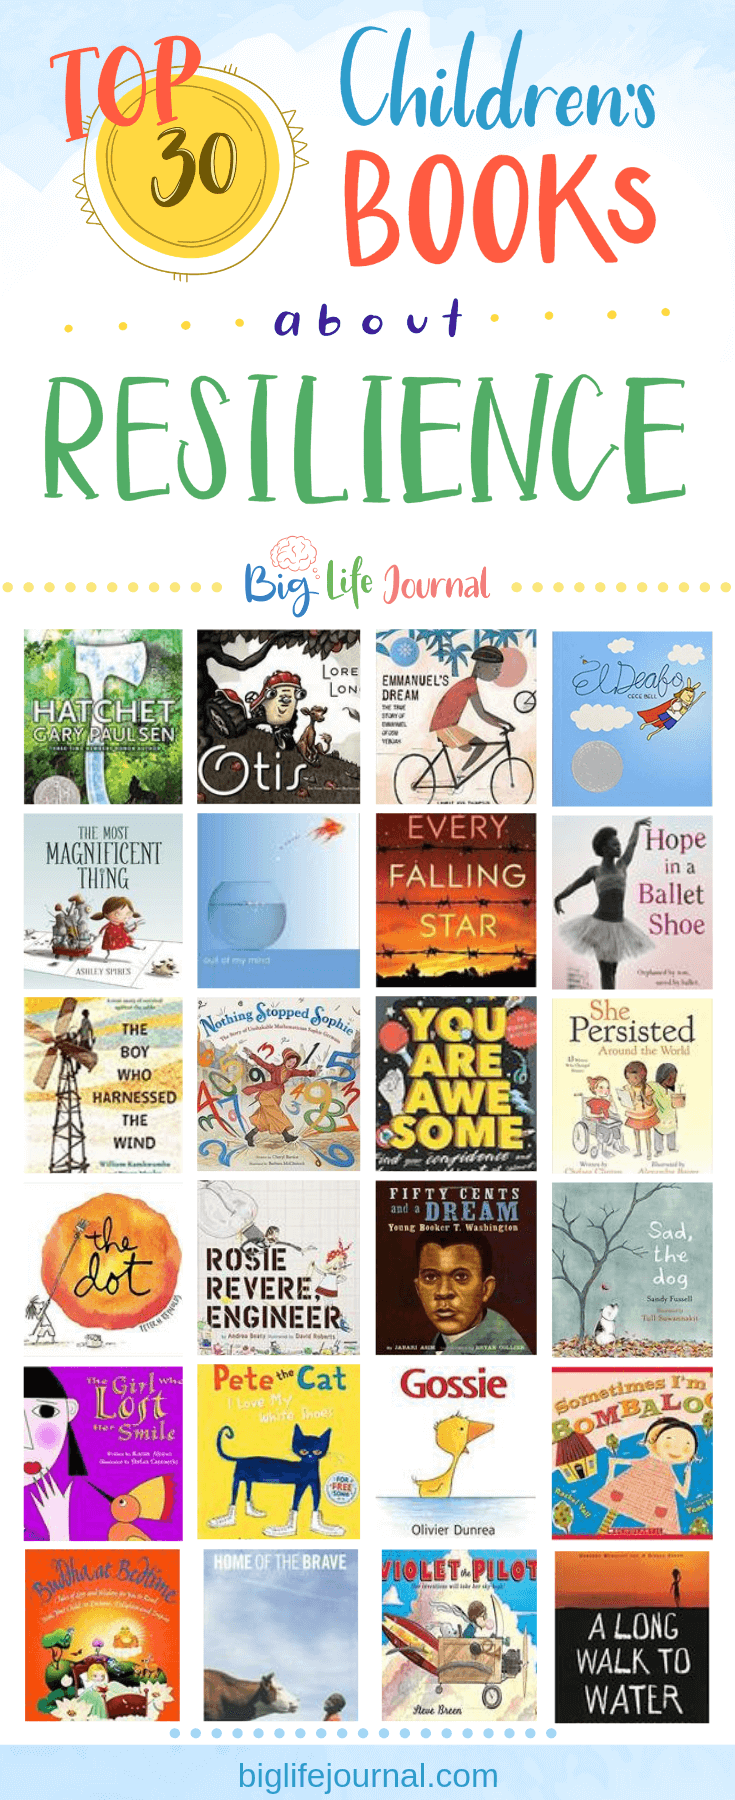 12 Top 10 Children's Books About Resilience – Big Life Journal